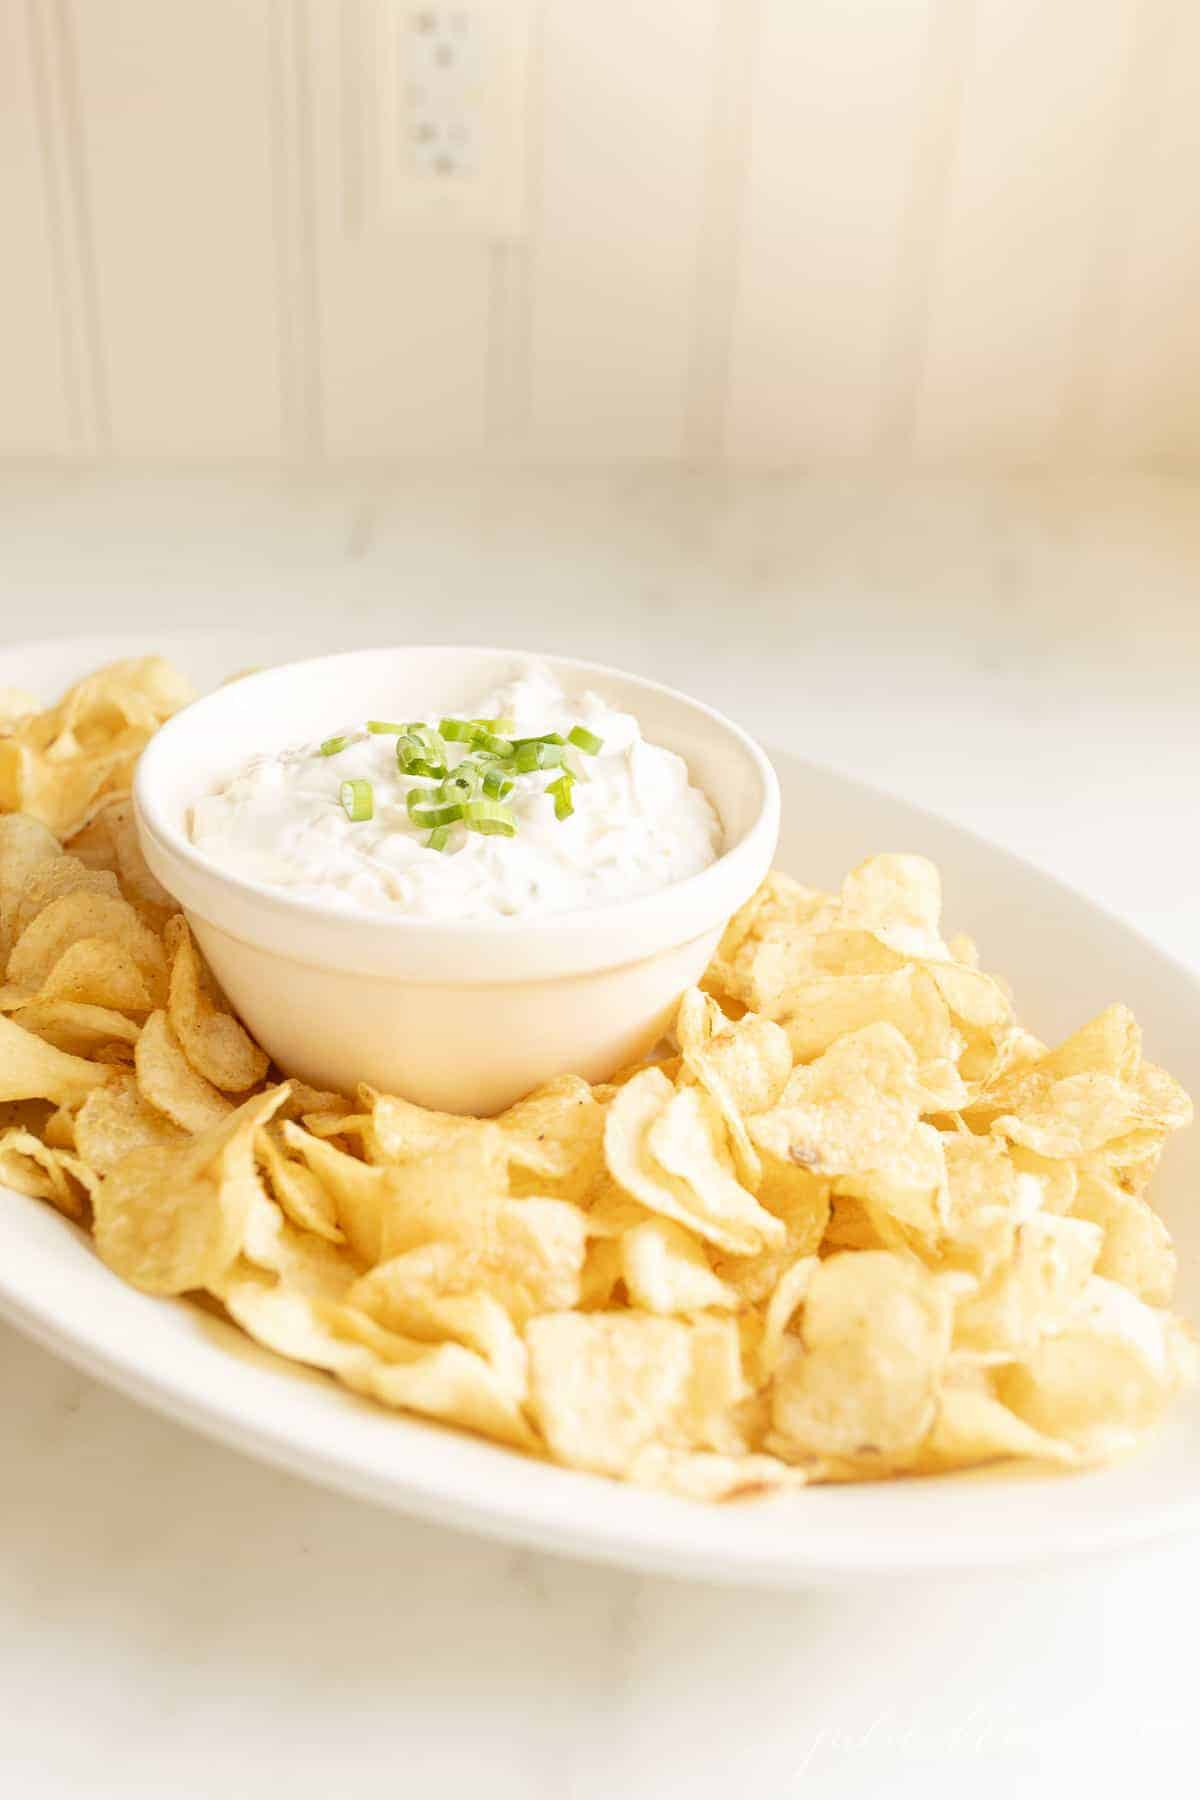 sour cream chip dip on a platter on a kitchen counter